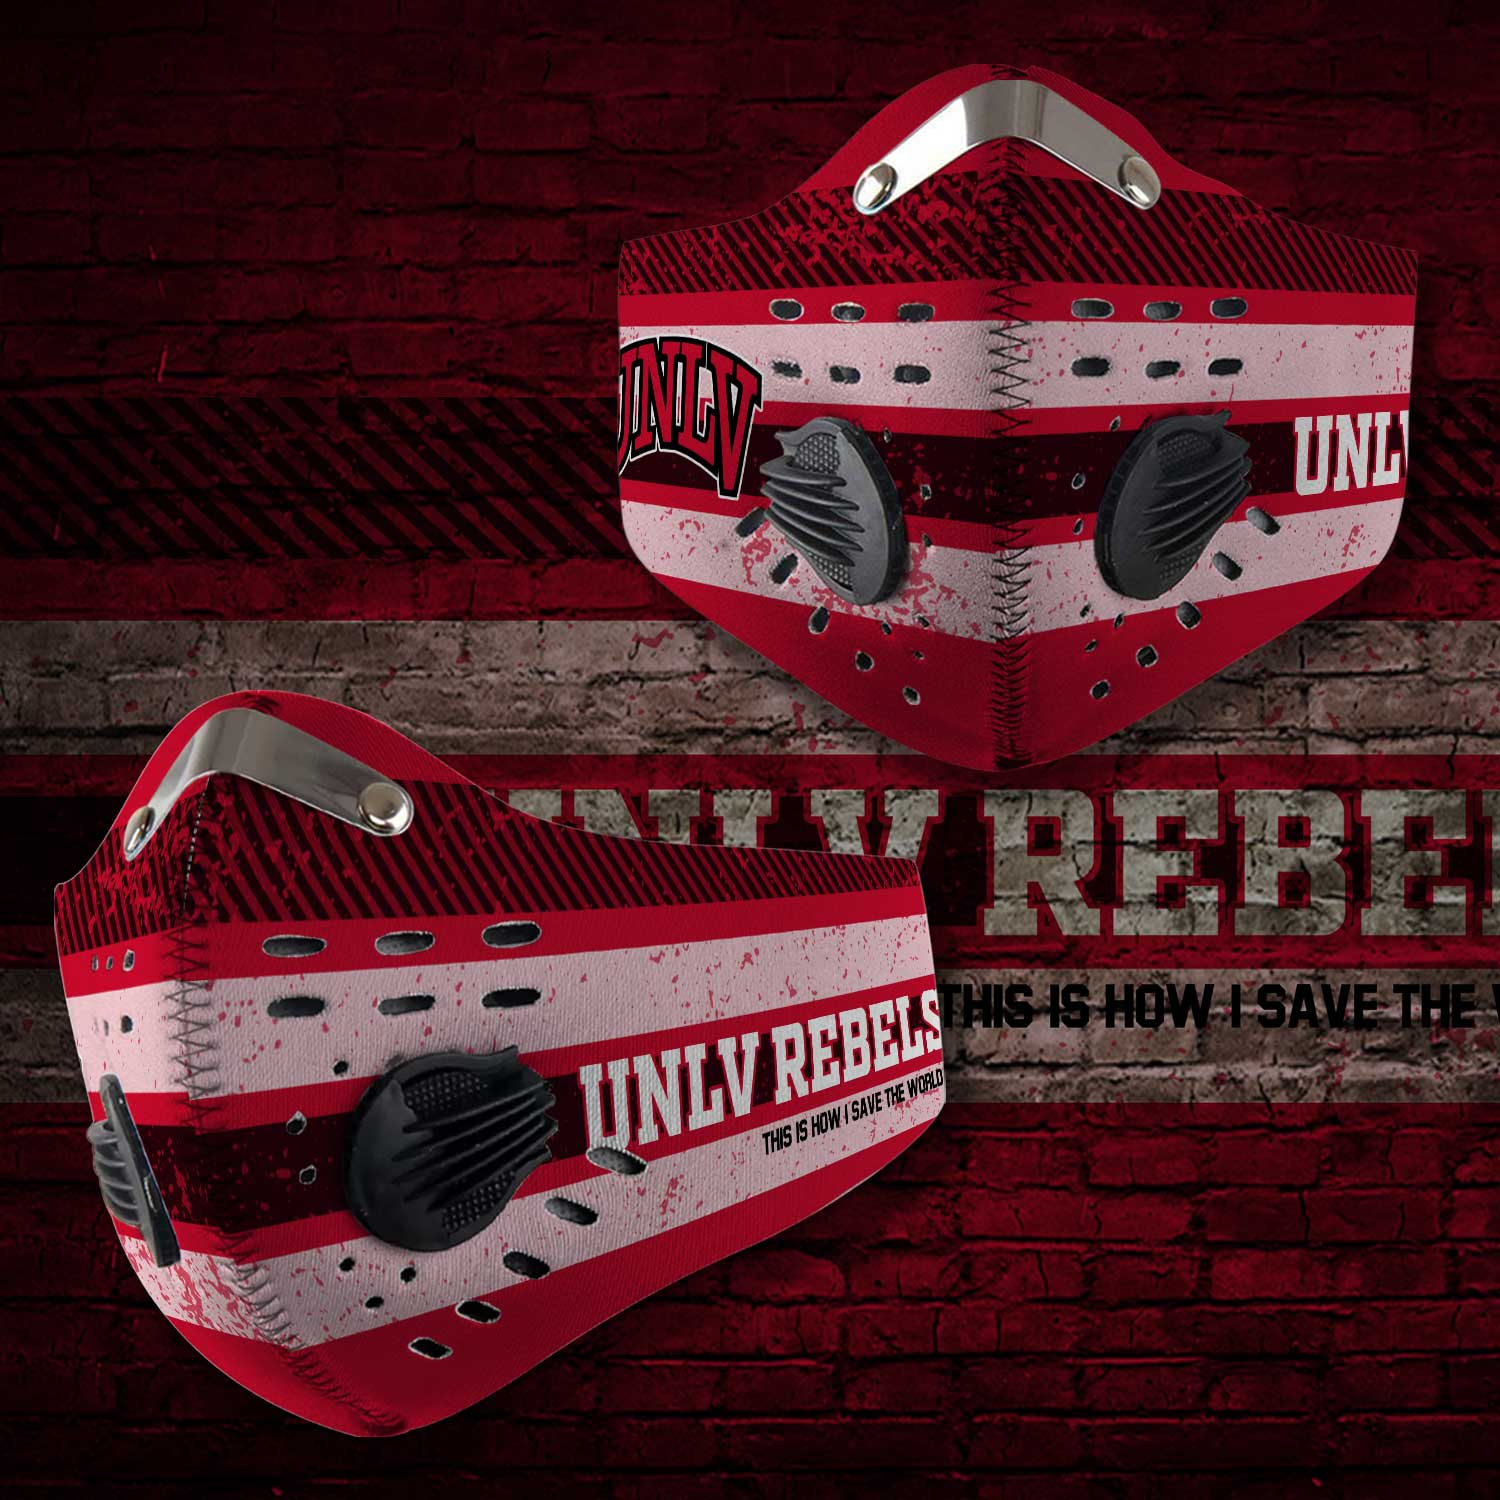 UNLV rebels this is how i save the world carbon filter face mask 2